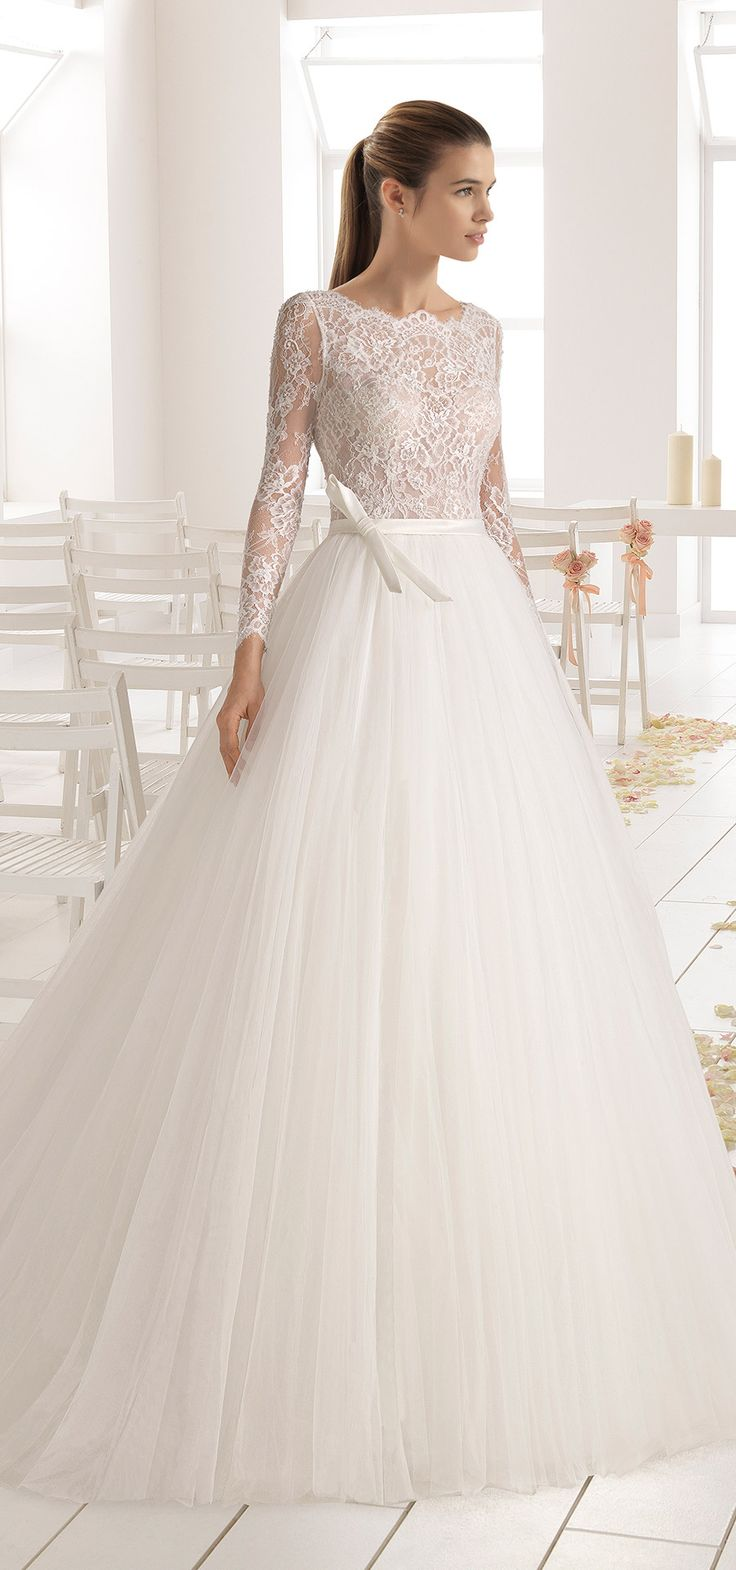 This gown is stunning! BAMBU by @airebarcelona … From the cascading tulle skirt to the delicate Chantilly lace bodice, this gown spells ROMANCE.   #GownoftheWeek #AireBarcelona #wedding #bridal #sponsored #weddingdress #ballgown  #weddinggown #romantic